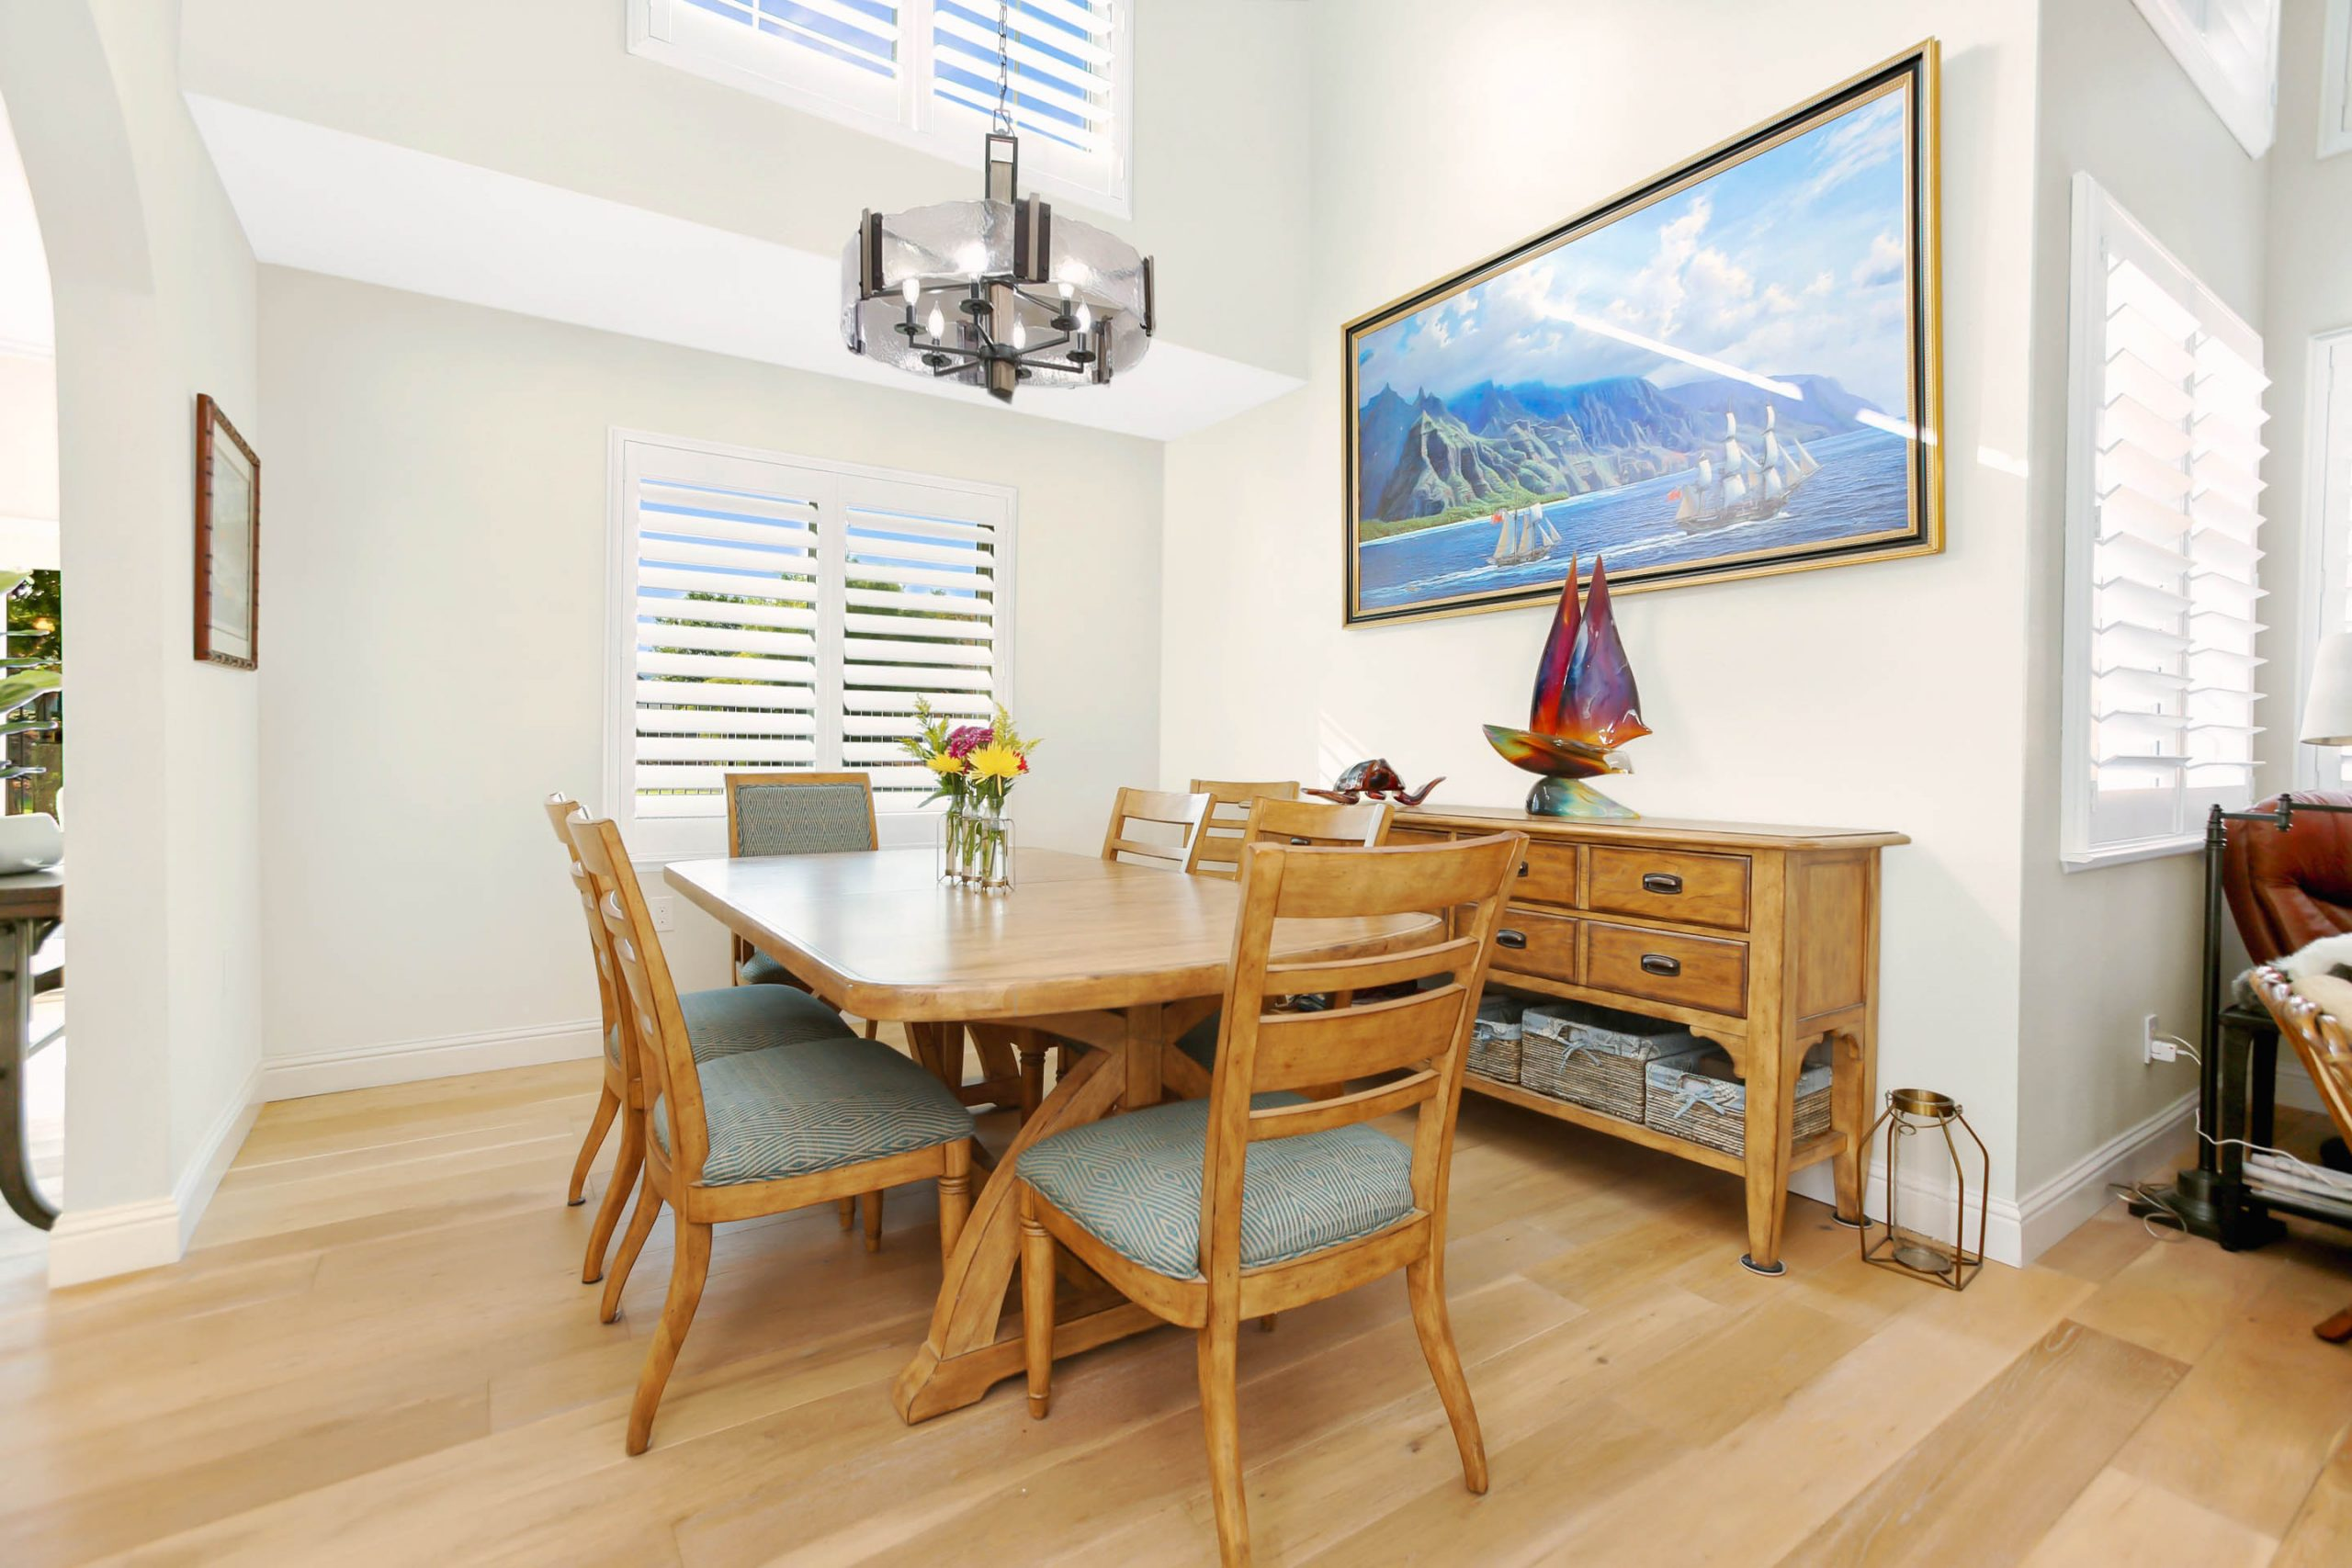 The new and improved expanded dining room offers plenty of space for large family gatherings.